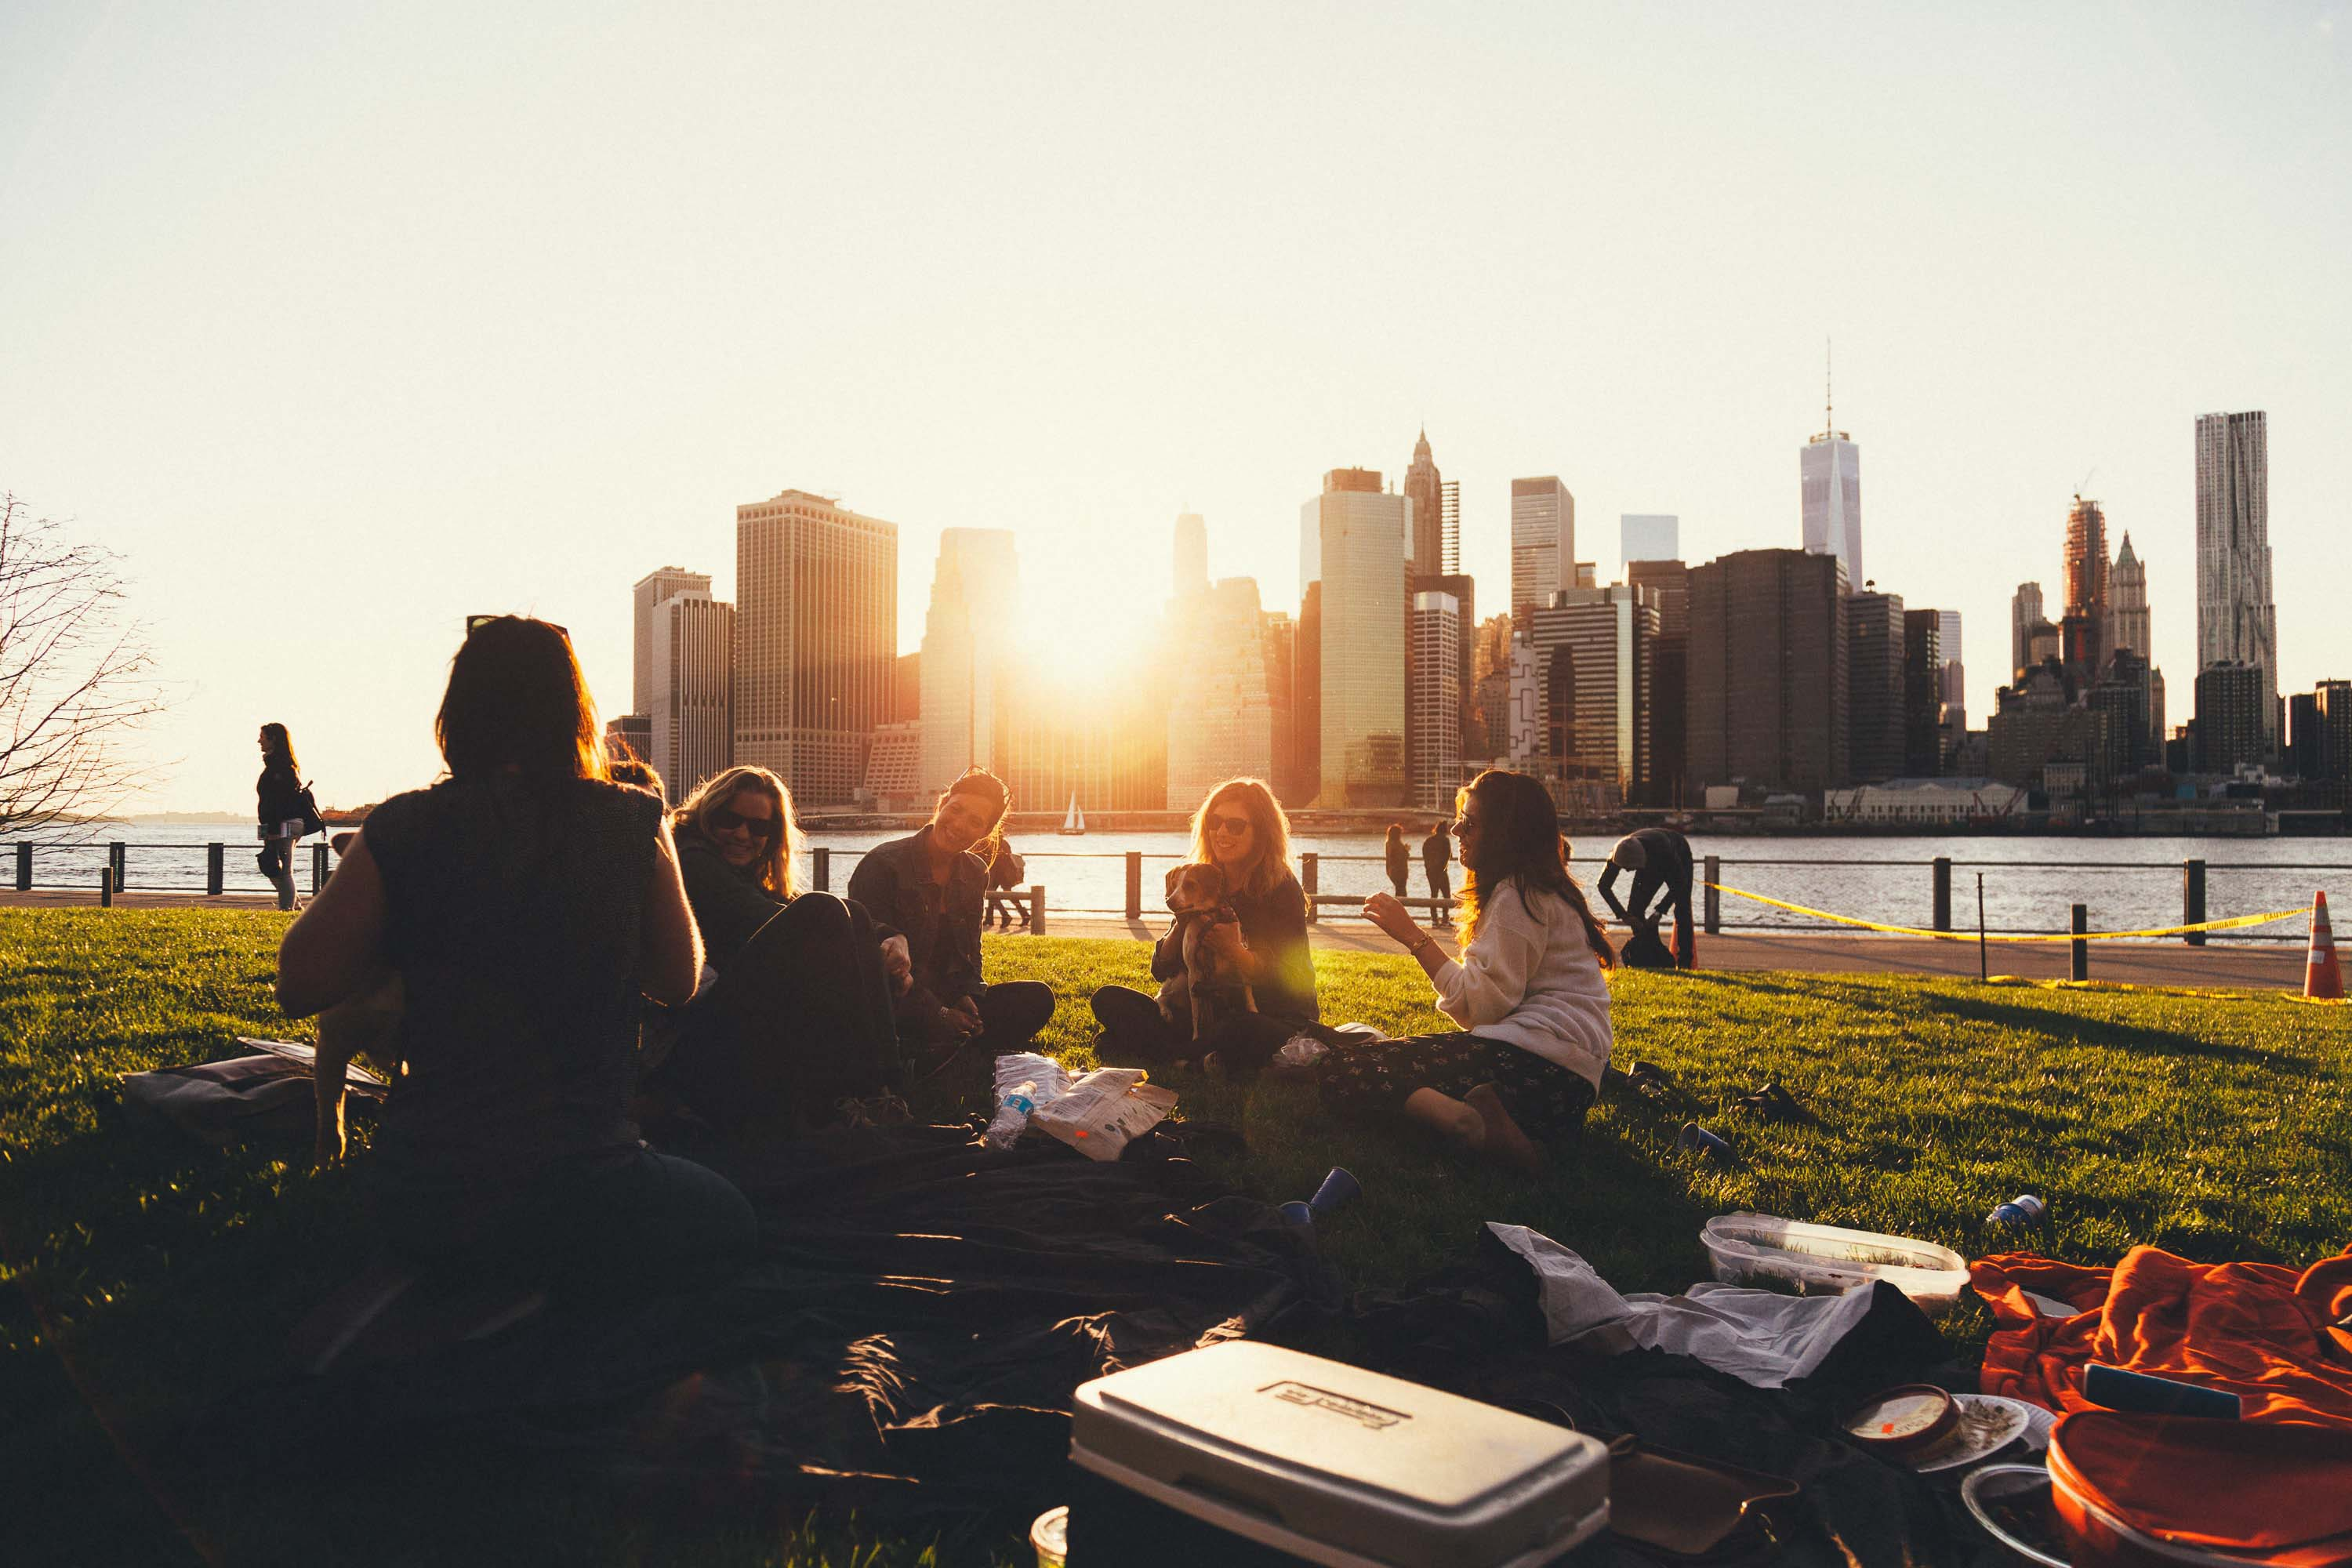 A group of 5 female friends are having a picnic on a grassy lawn. Two of the women have their dogs with them. In the background is a river and a city skyline, with the sun setting behind the buildings.